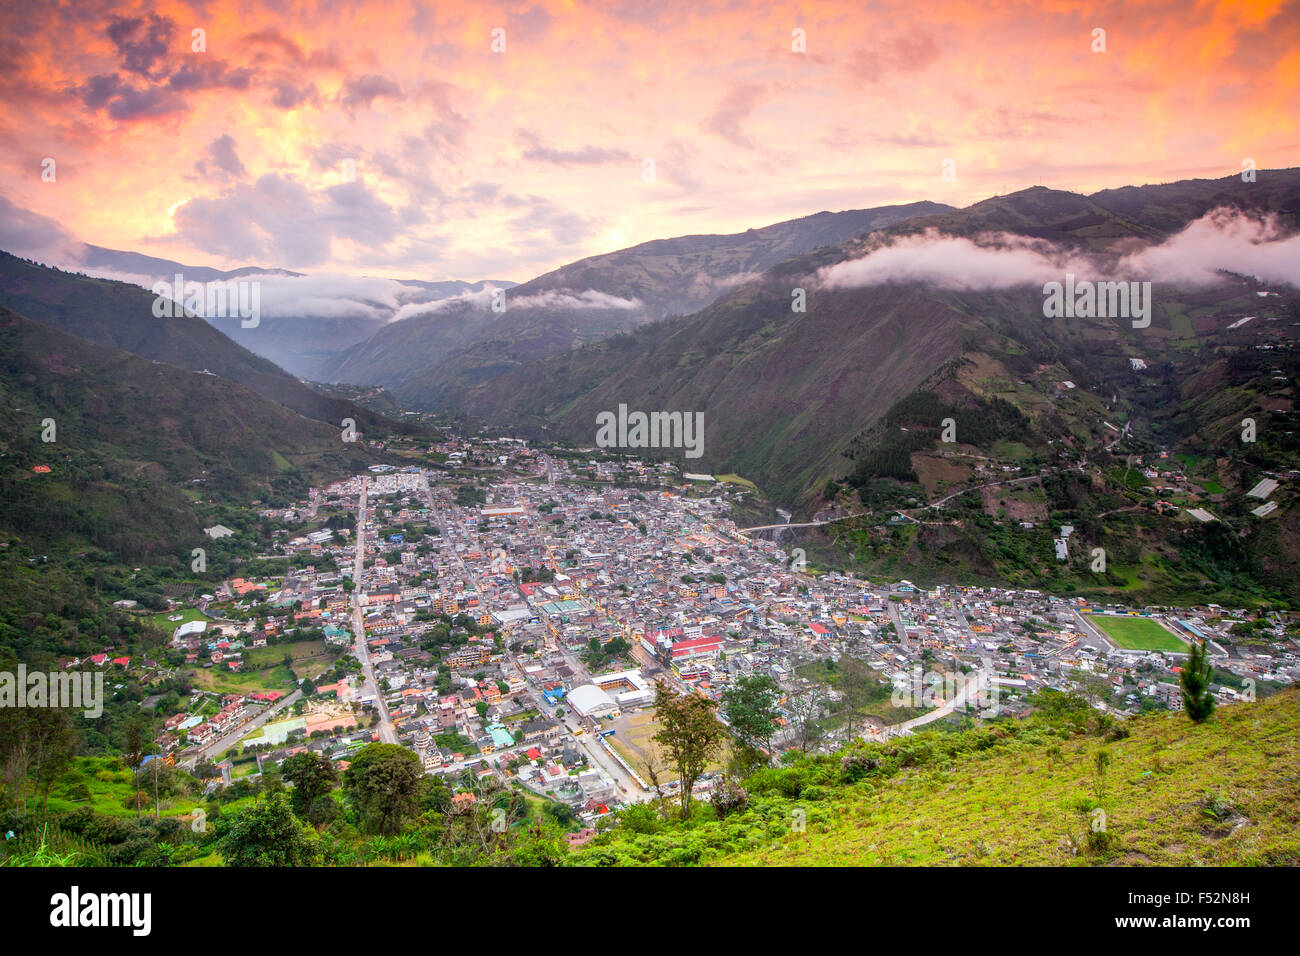 Banos Canton Is A Canton Of Ecuador Located In The Tungurahua Province It Is Also A Place With Many Touristic Attractions - Stock Image